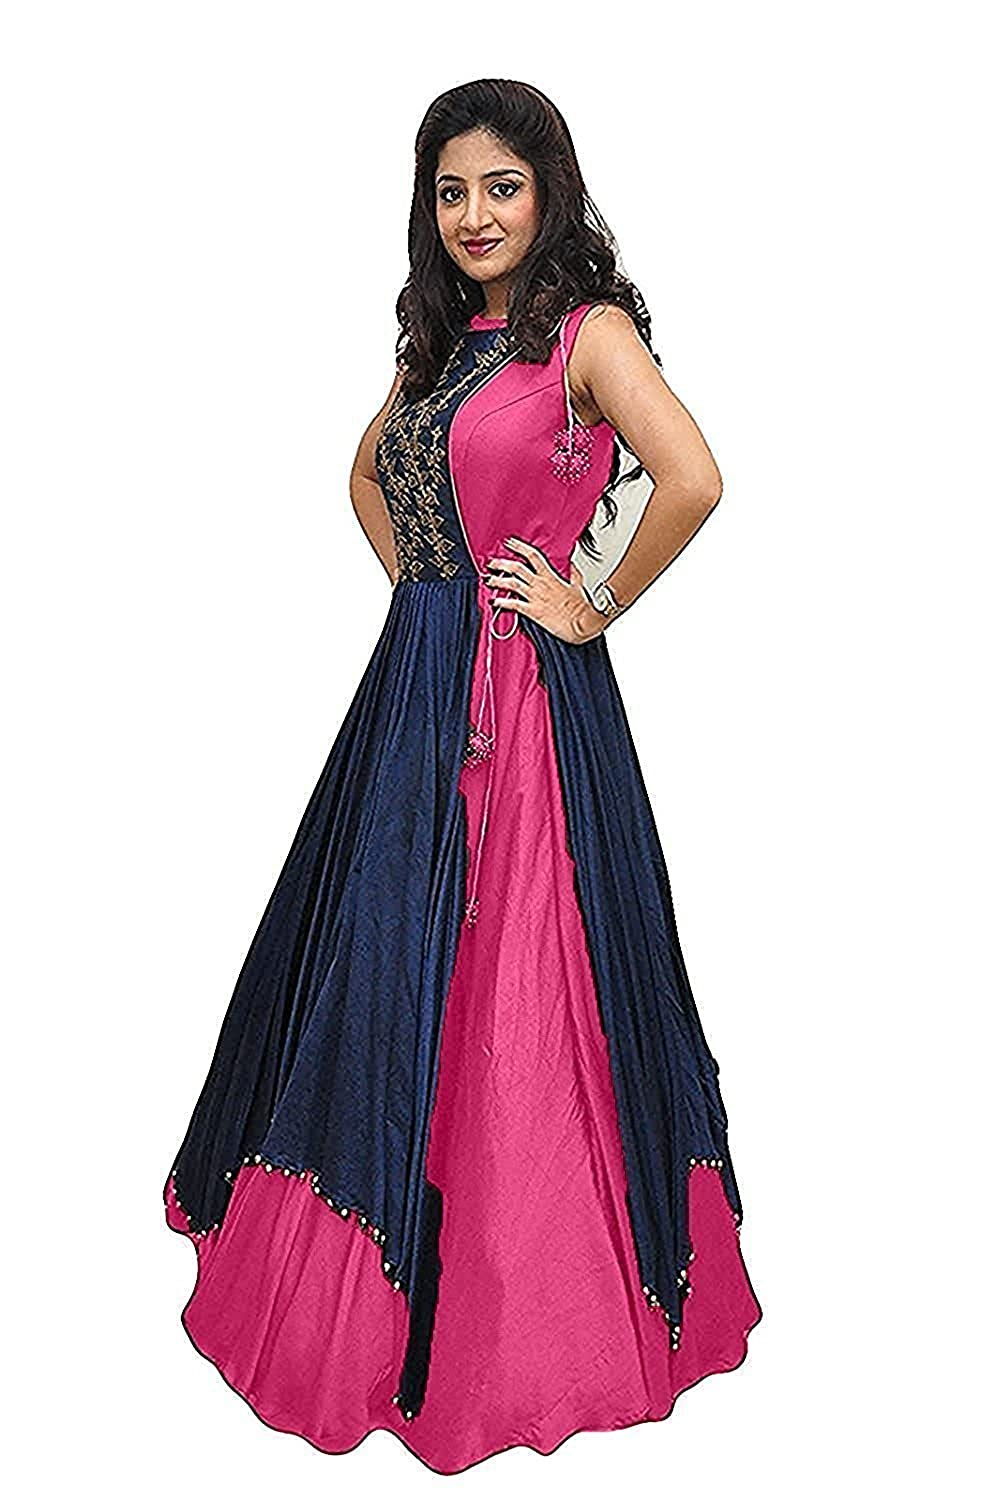 gowns for women party wear (lehenga choli for wedding function salwar suits for women gowns for girls party wear 18 years latest sarees collection 2018 new design dress for girls designer sarees new collection today low price new gown for girls party wear)